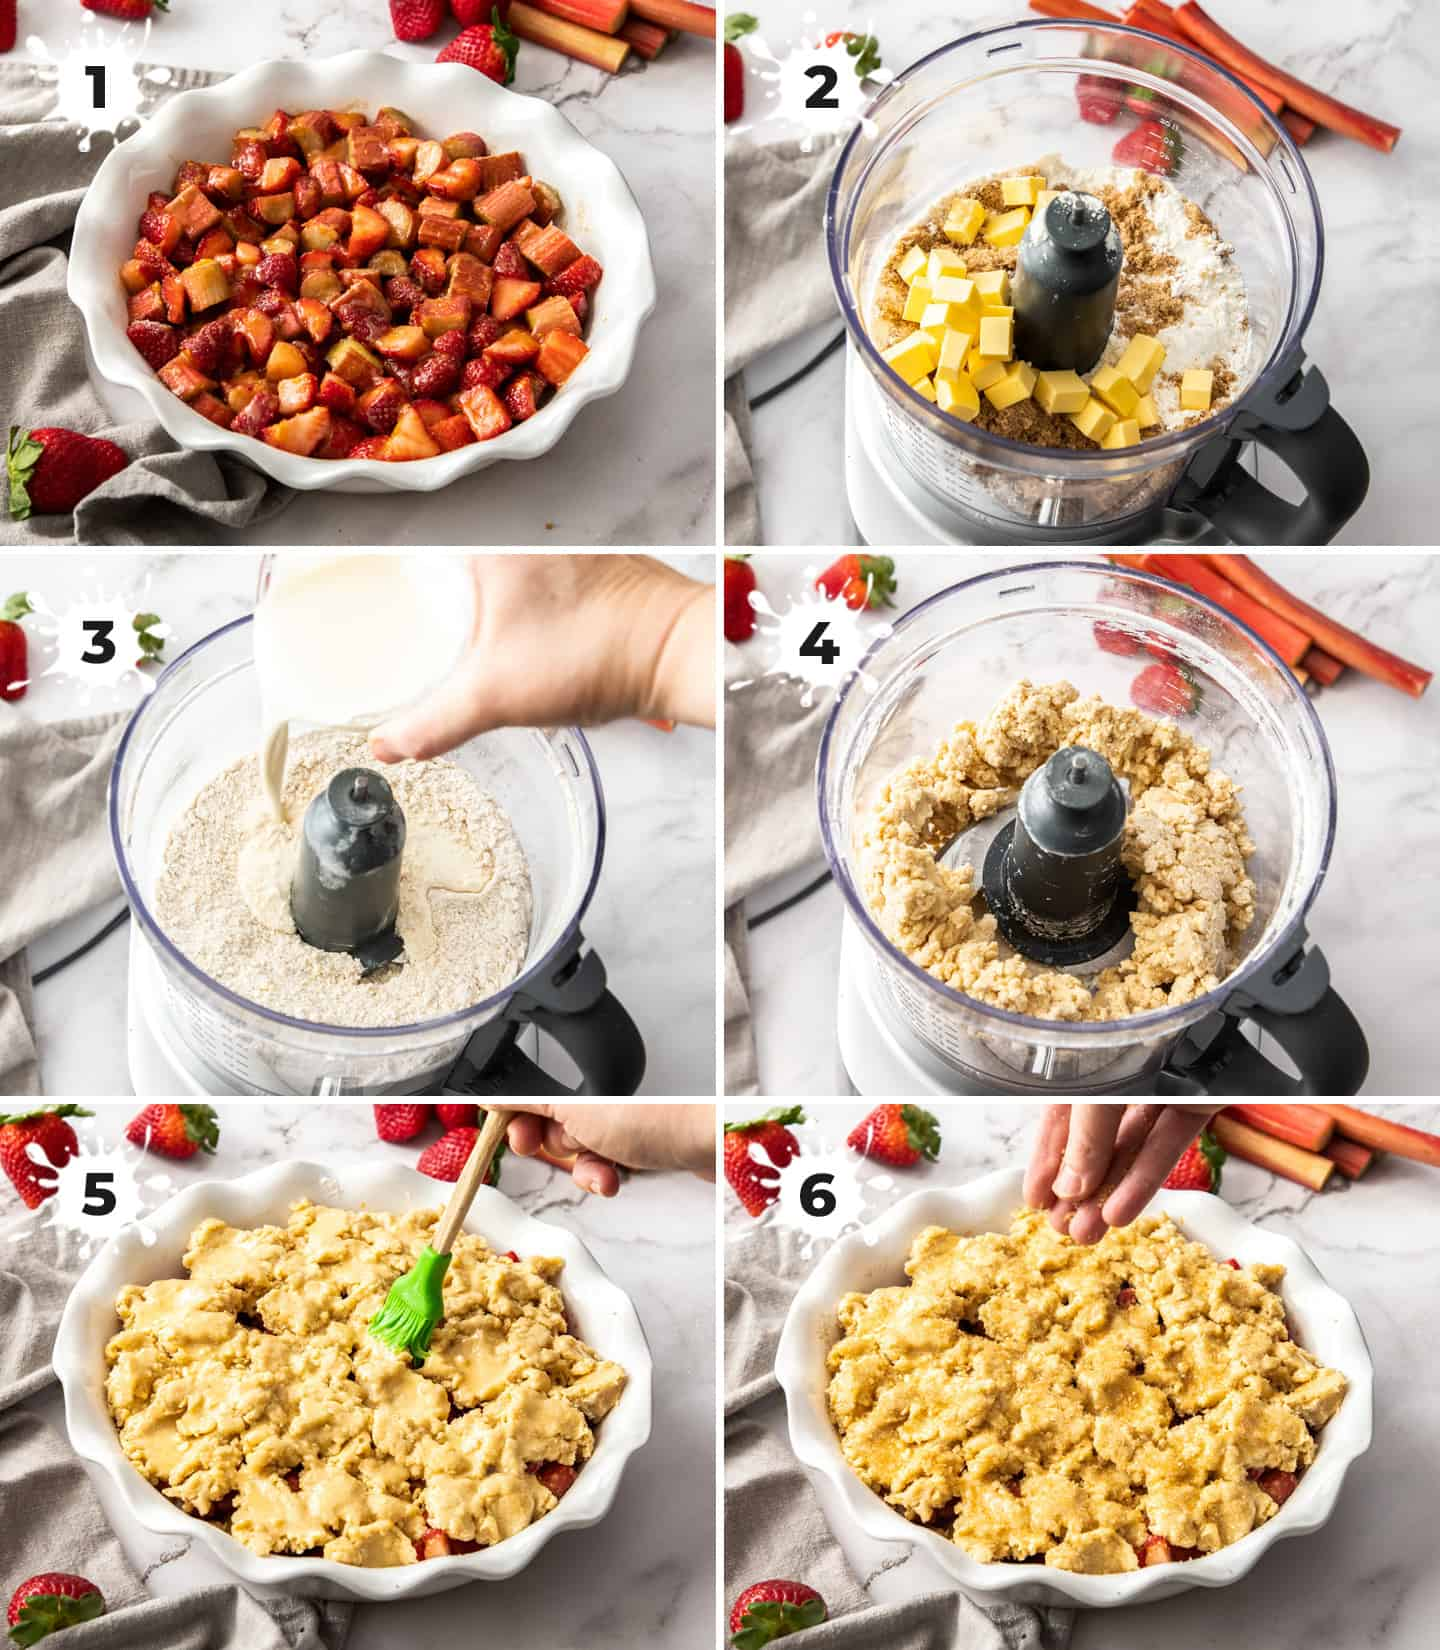 A collage of 6 images showing the steps to making the strawberry rhubarb cobbler.